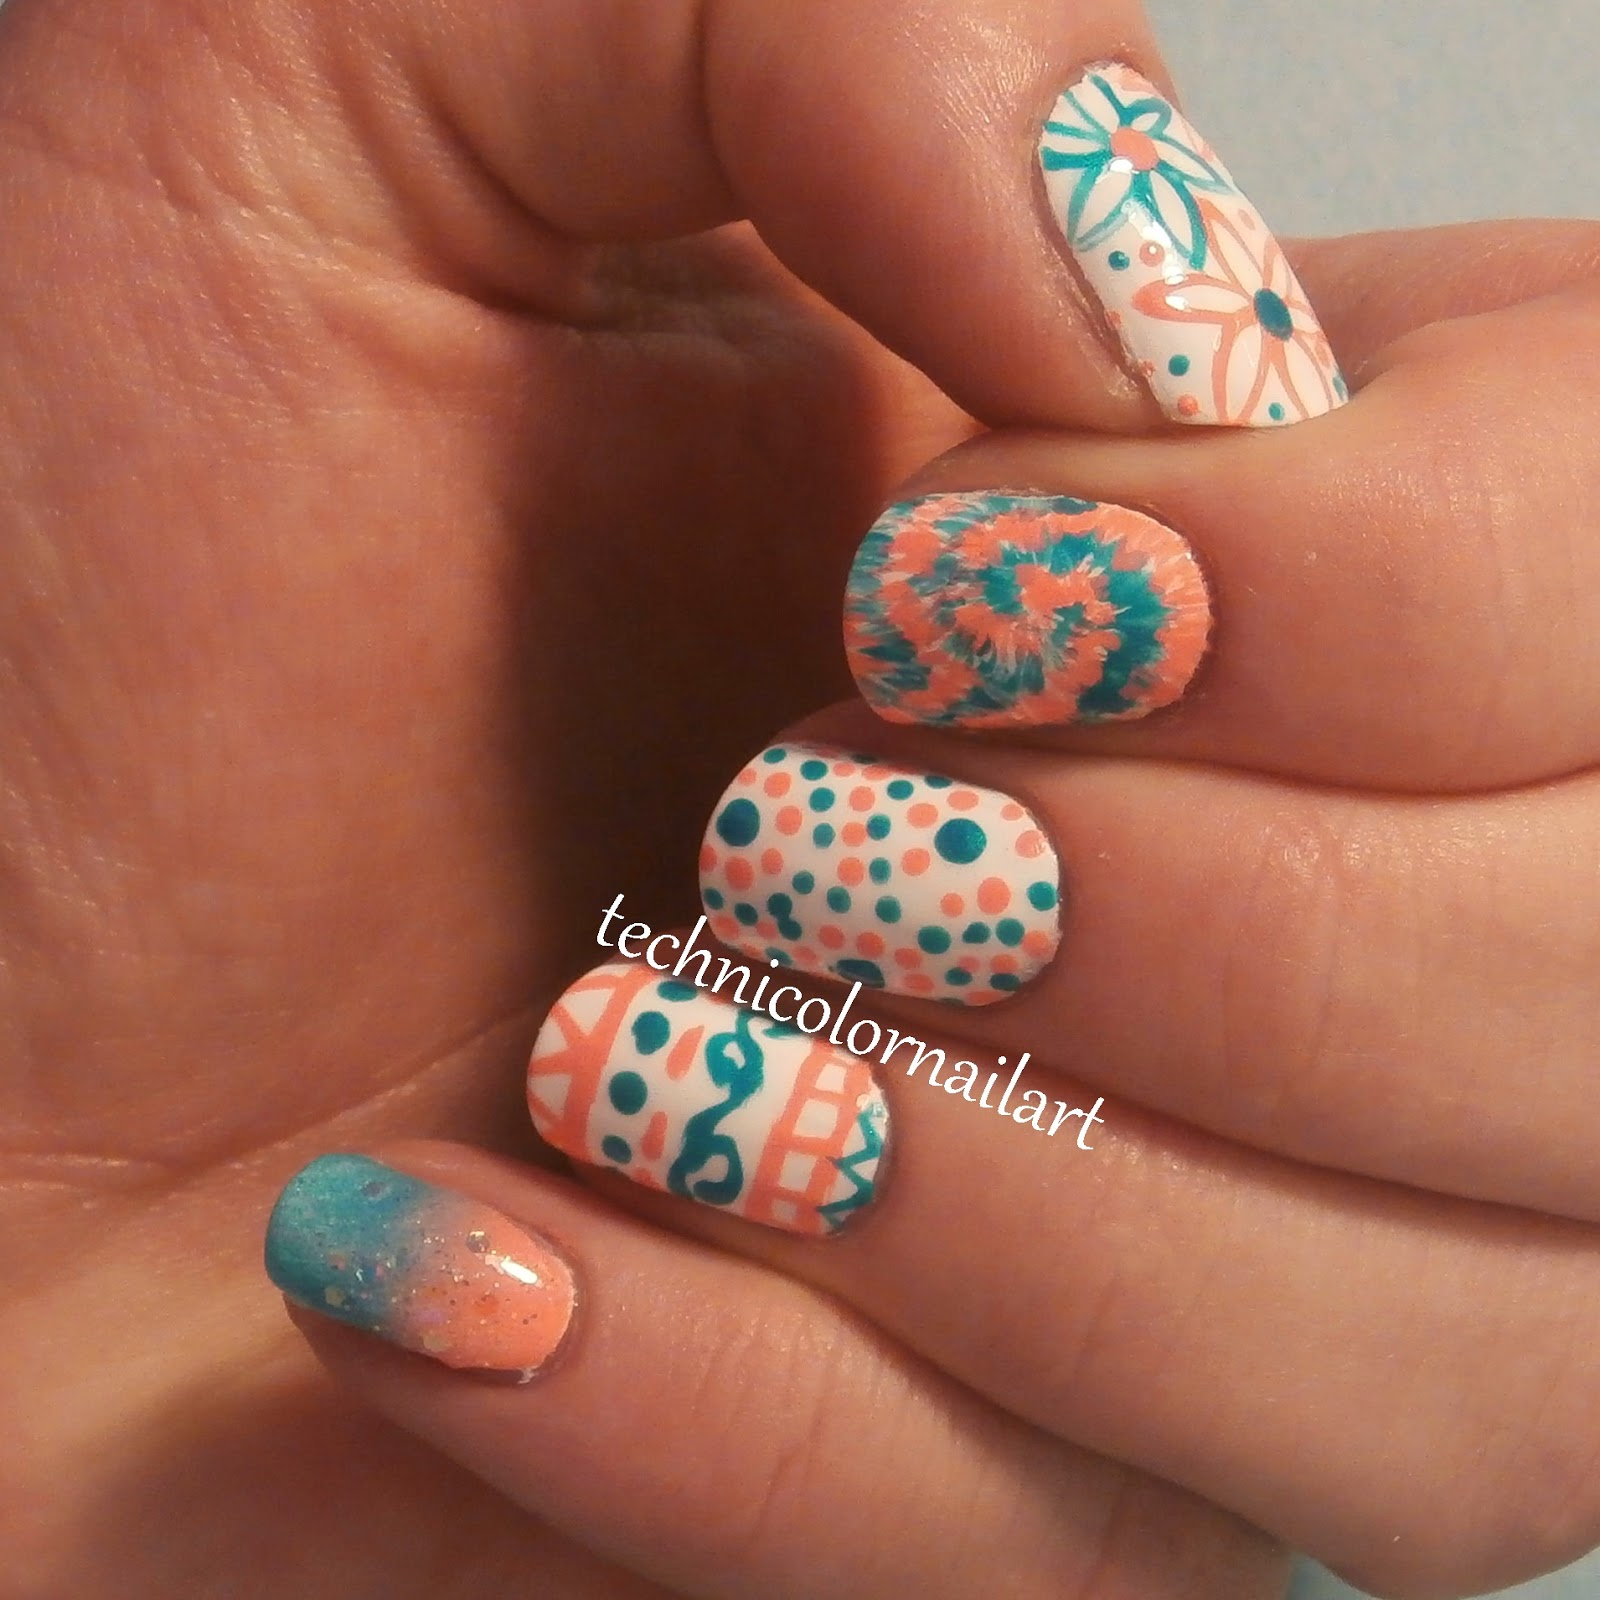 Complementary colors skittle nail art